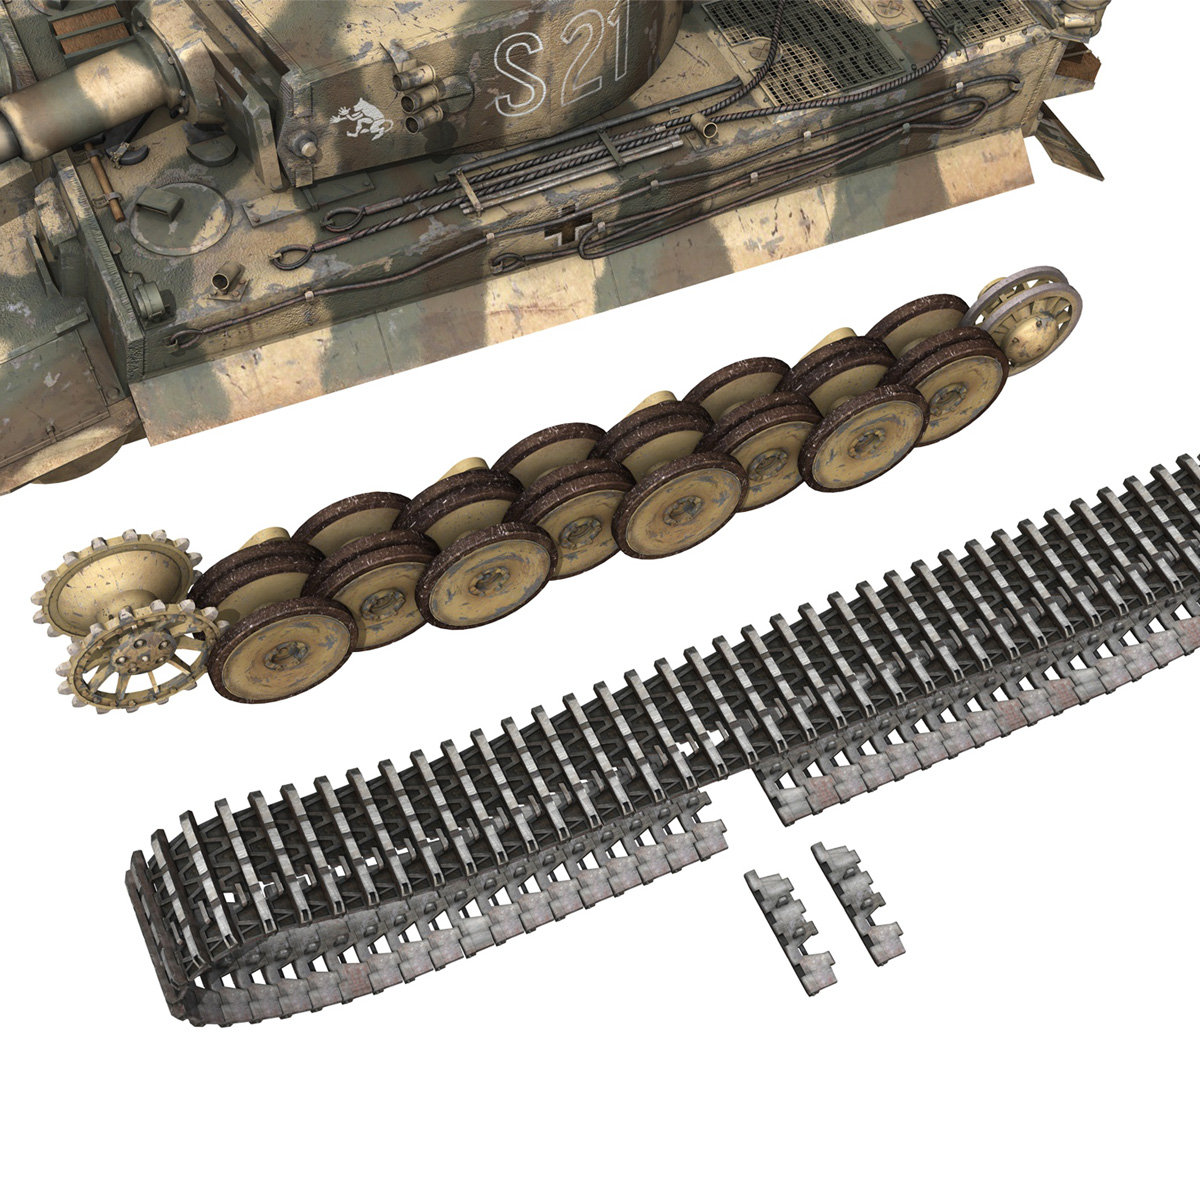 panzer vi – tiger – s21 – early production 3d model 3ds c4d lwo 279379